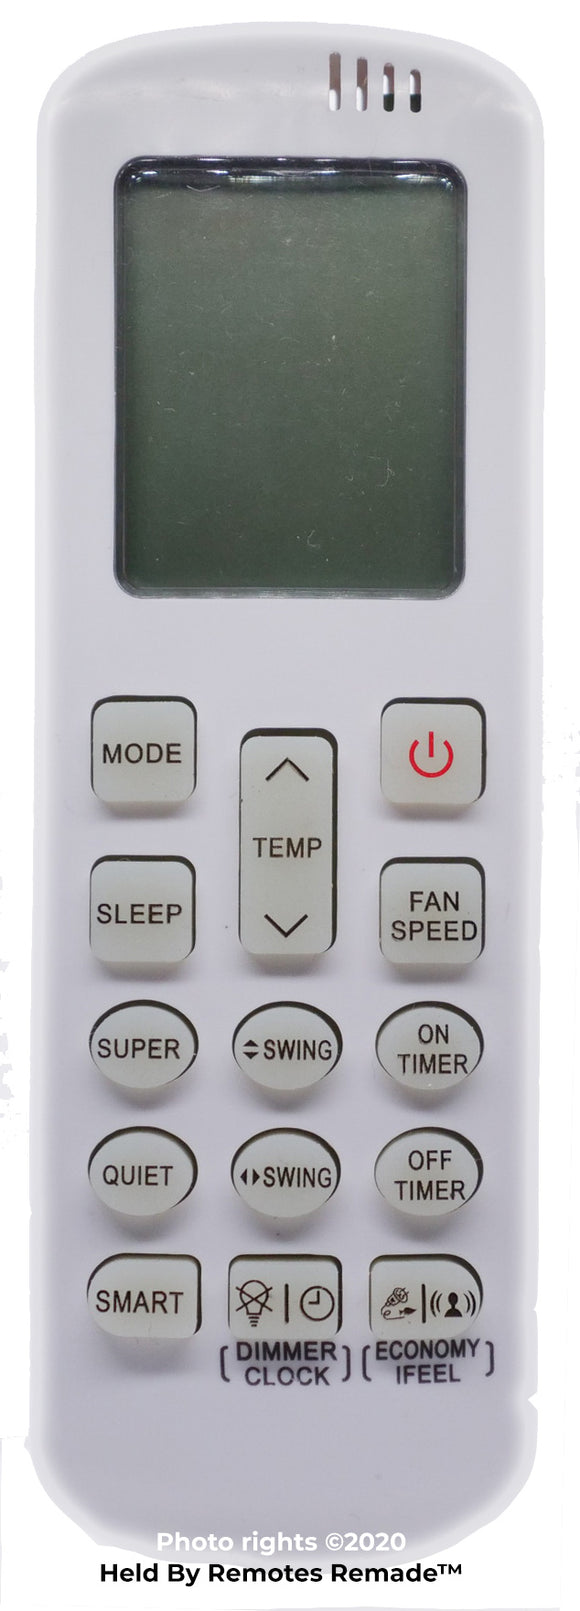 Hisense Air Conditioner Remote l DG11R2-01